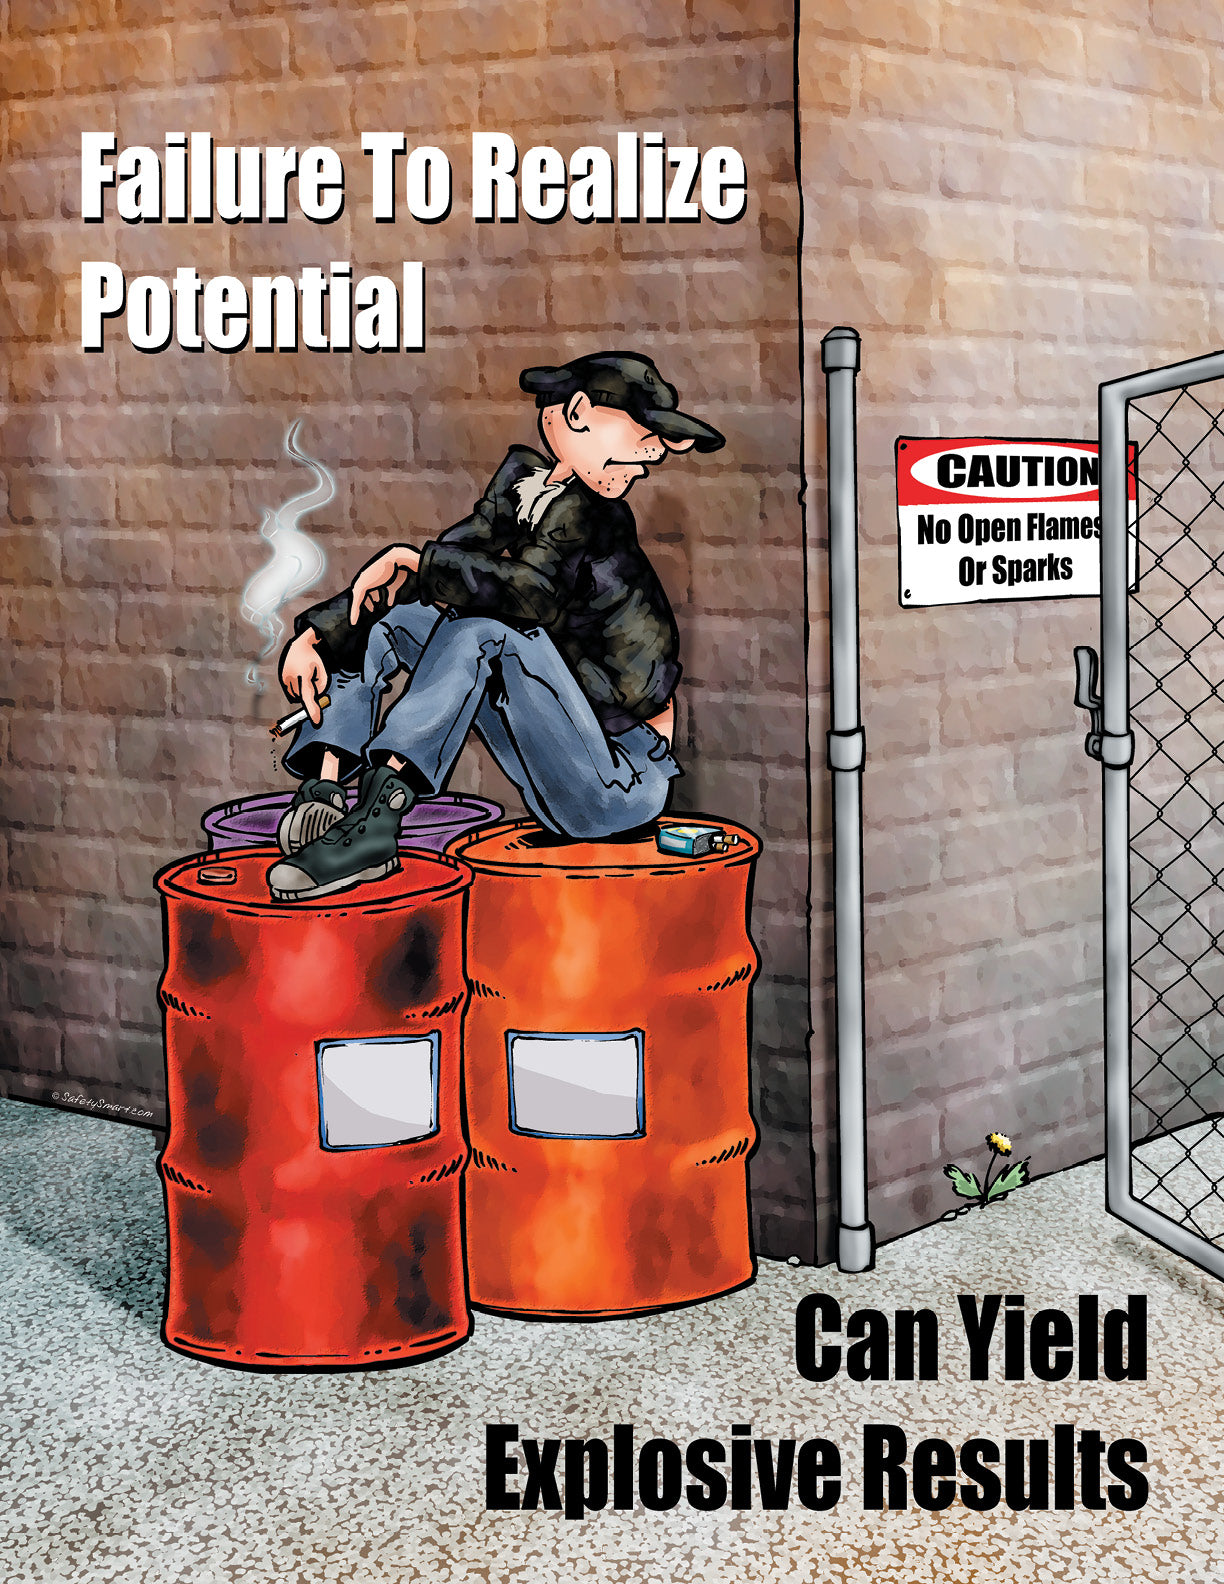 Failure To Realize Potential Can Yield Explosive Results - Safety Poster